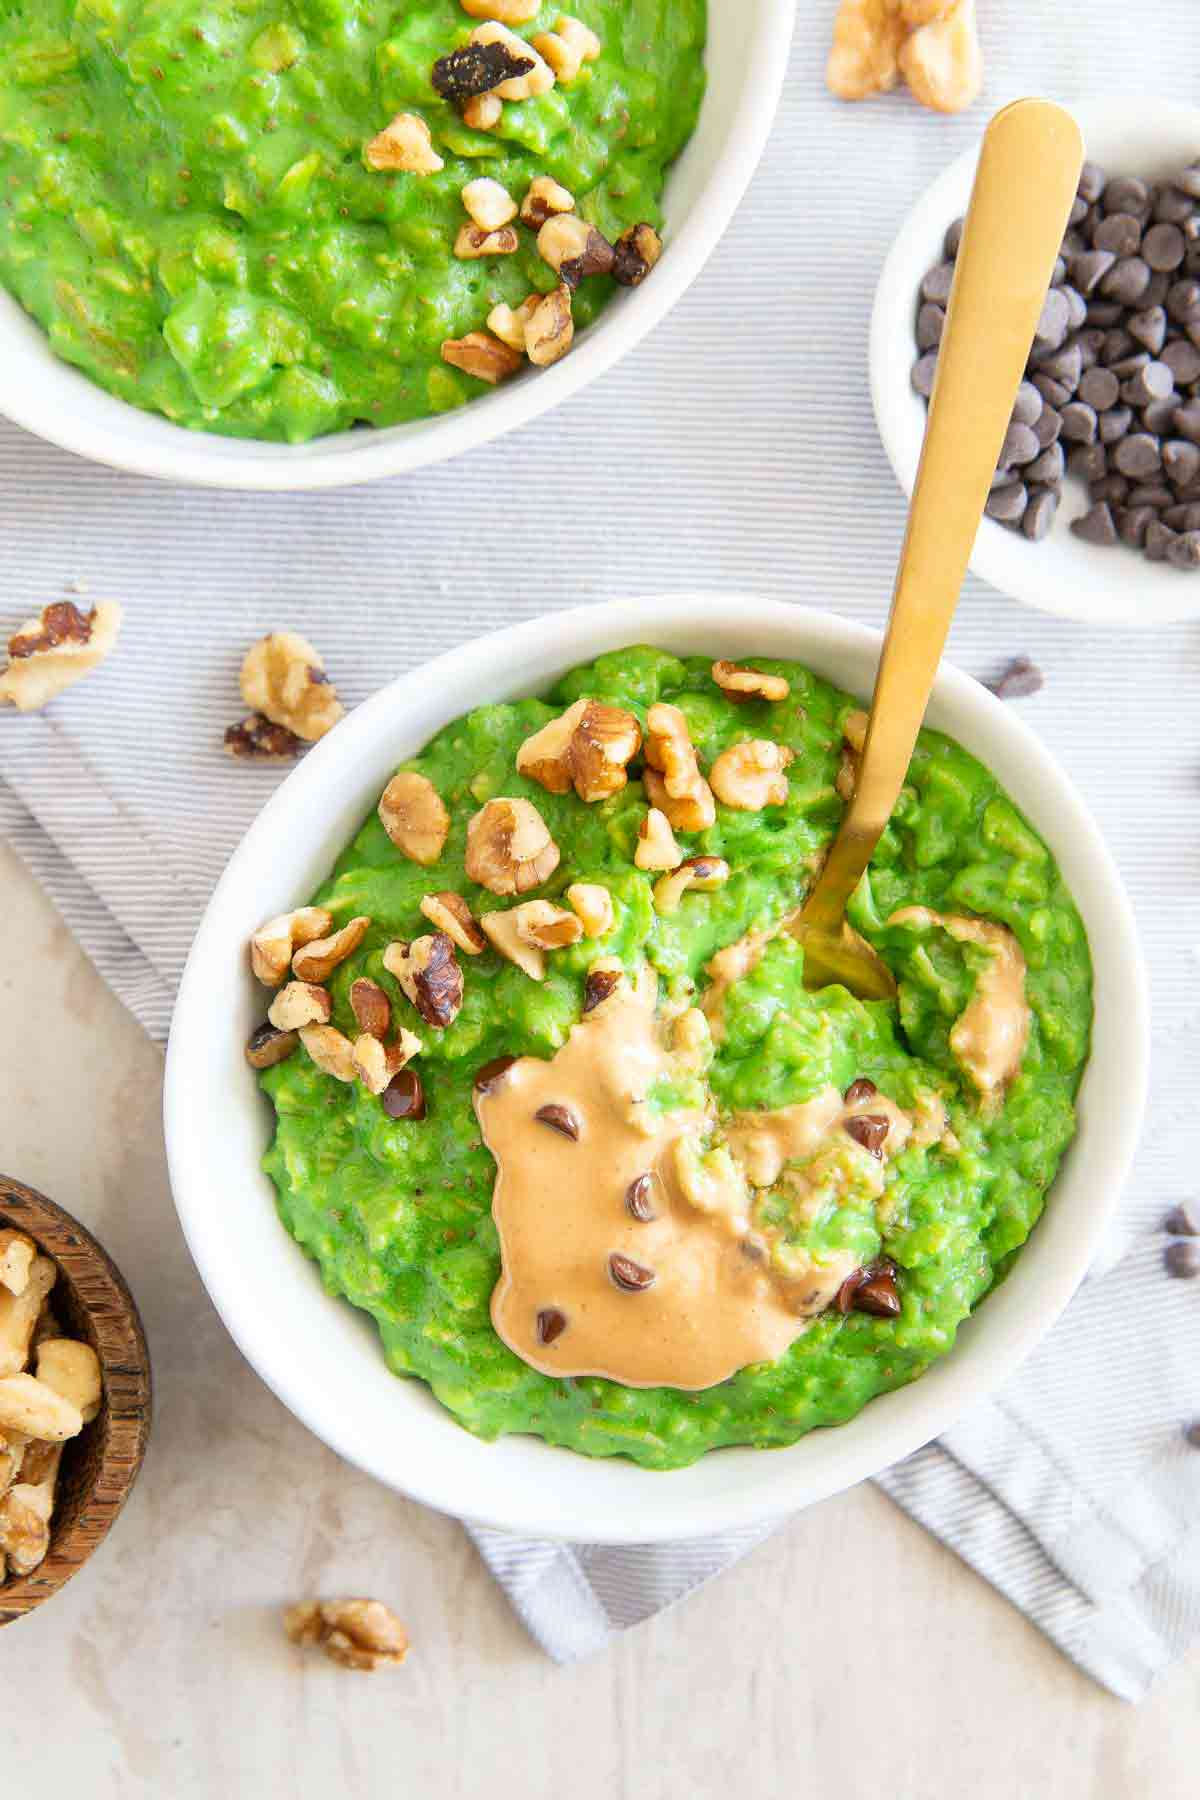 This healthy green oats recipe uses spinach to make a fun and festive start to St. Patrick's Day.